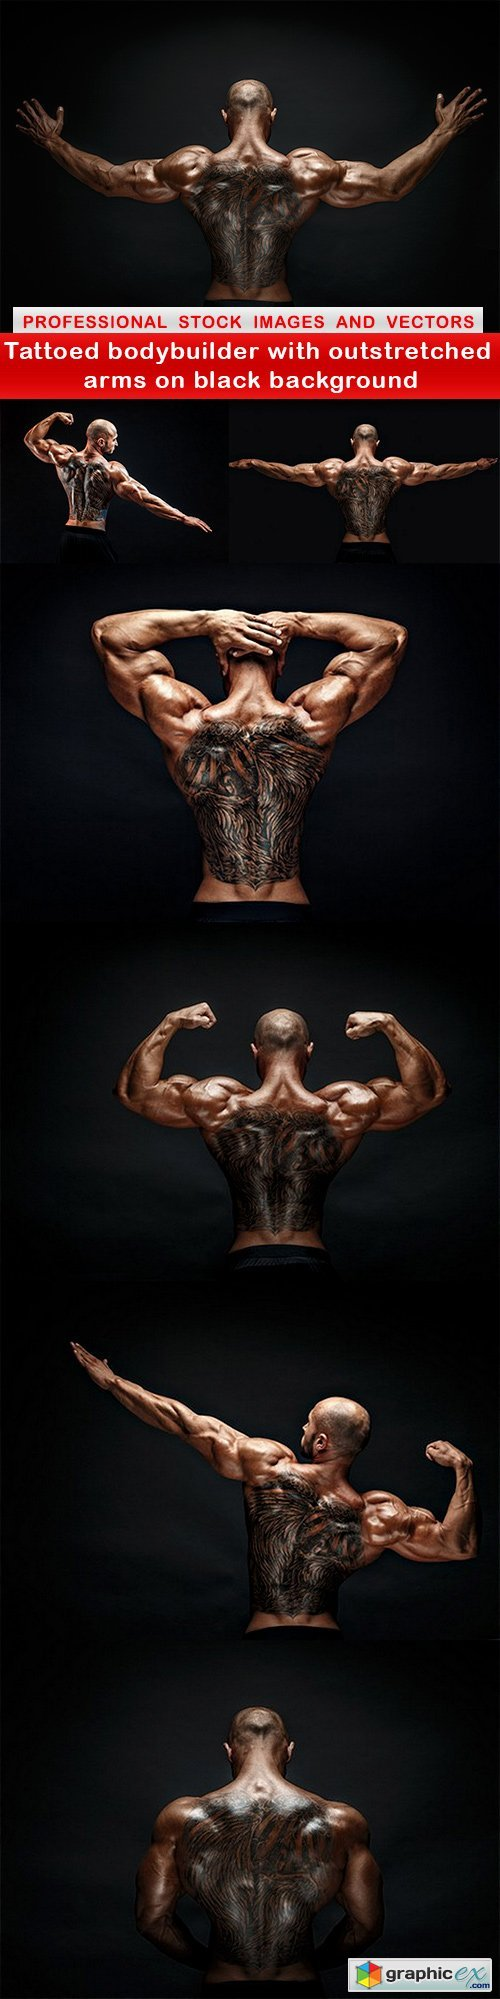 Tattoed bodybuilder with outstretched arms on black background - 7 UHQ JPEG